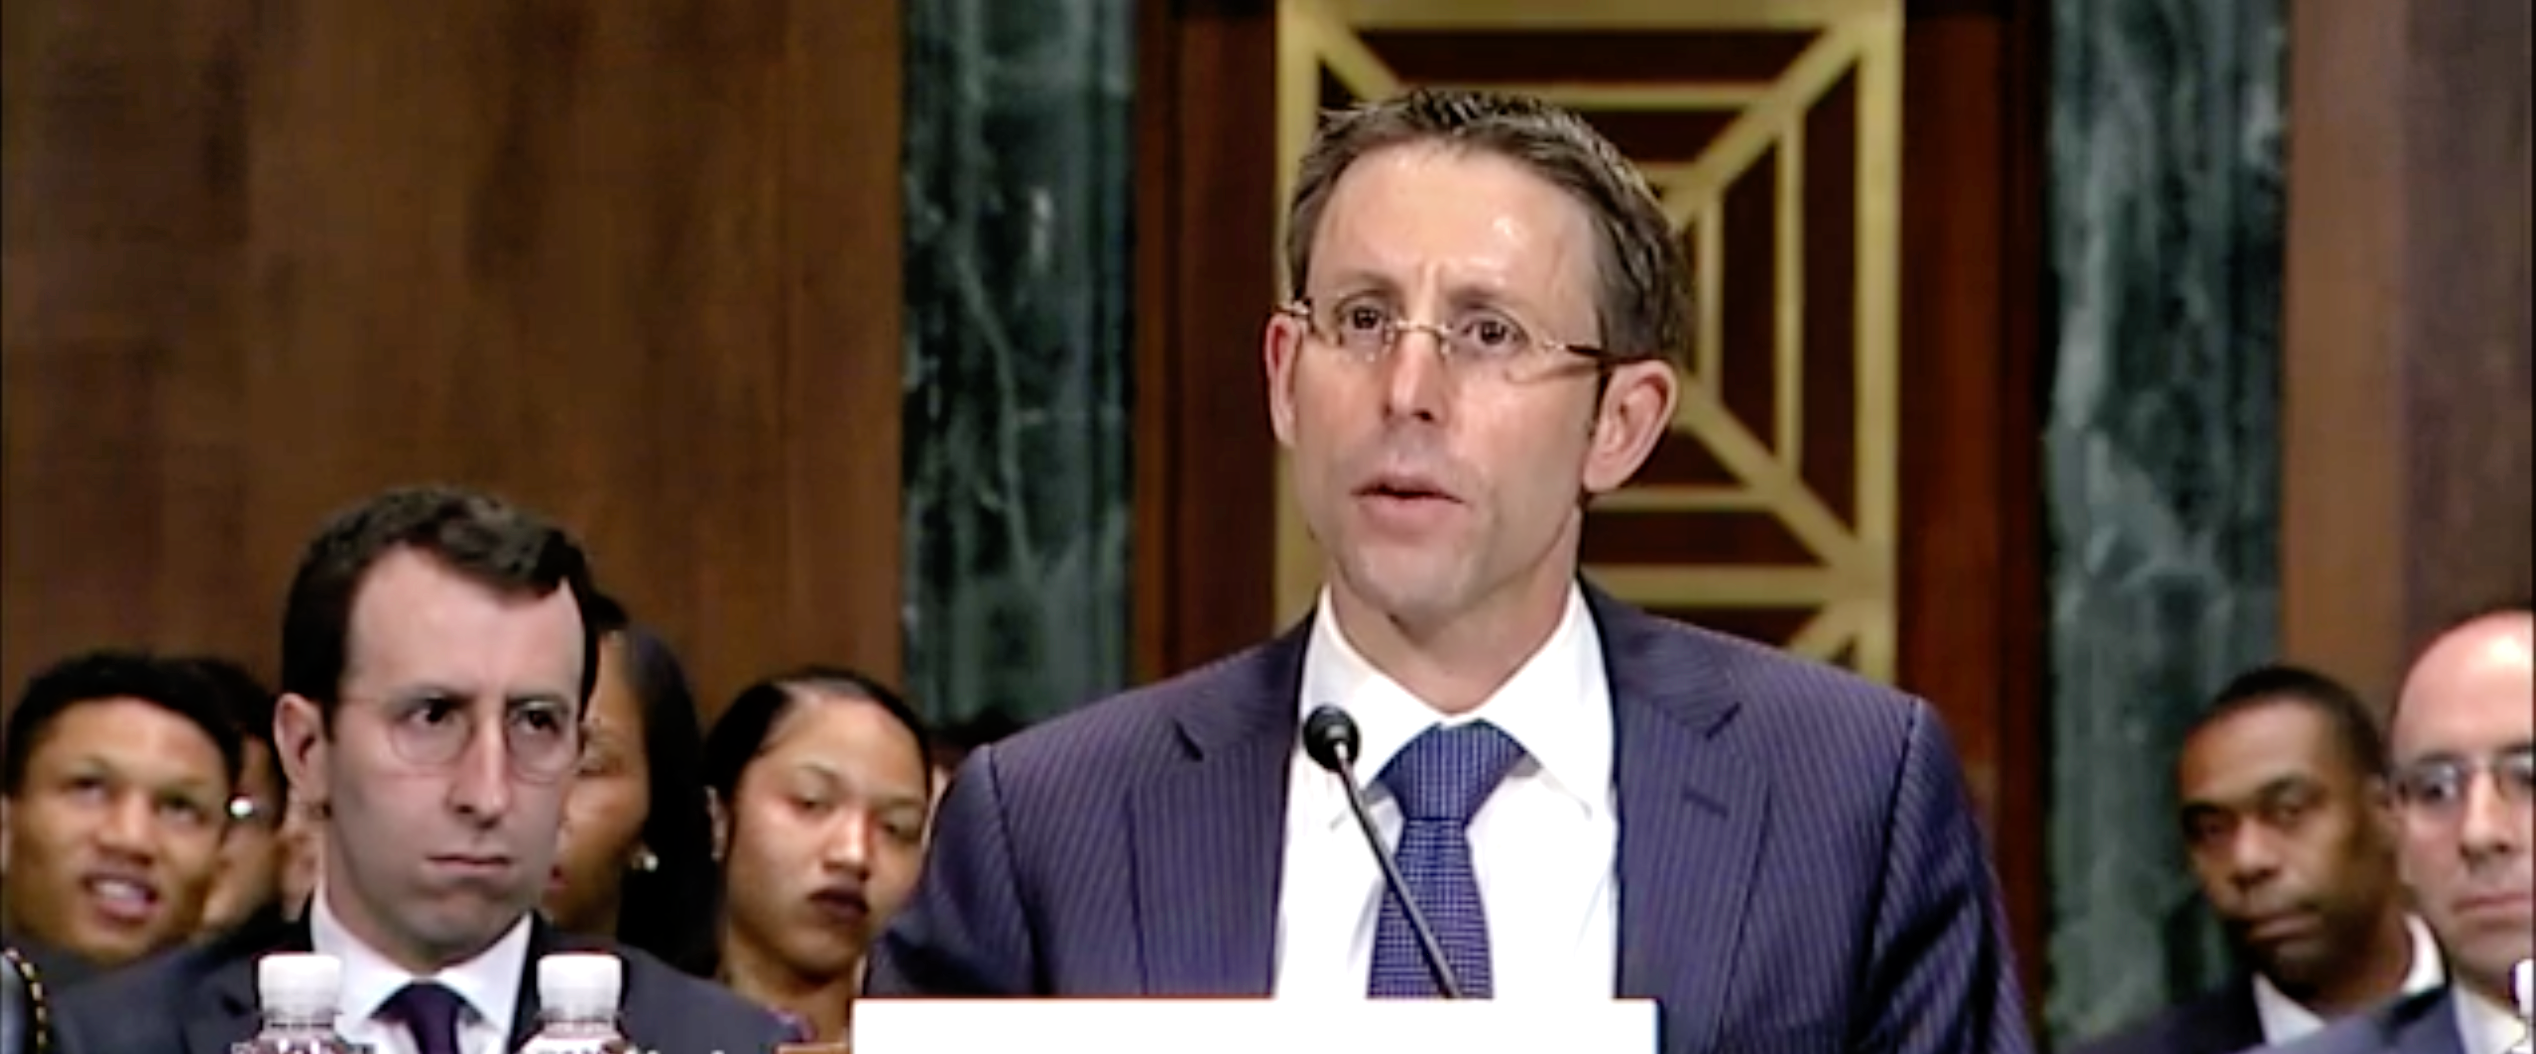 Daniel Bress, a nominee for the 9th U.S. Circuit Court of Appeals, appears before the Senate Judiciary Committee on May 22, 2019. (Screenshot/Senate Judiciary Committee)